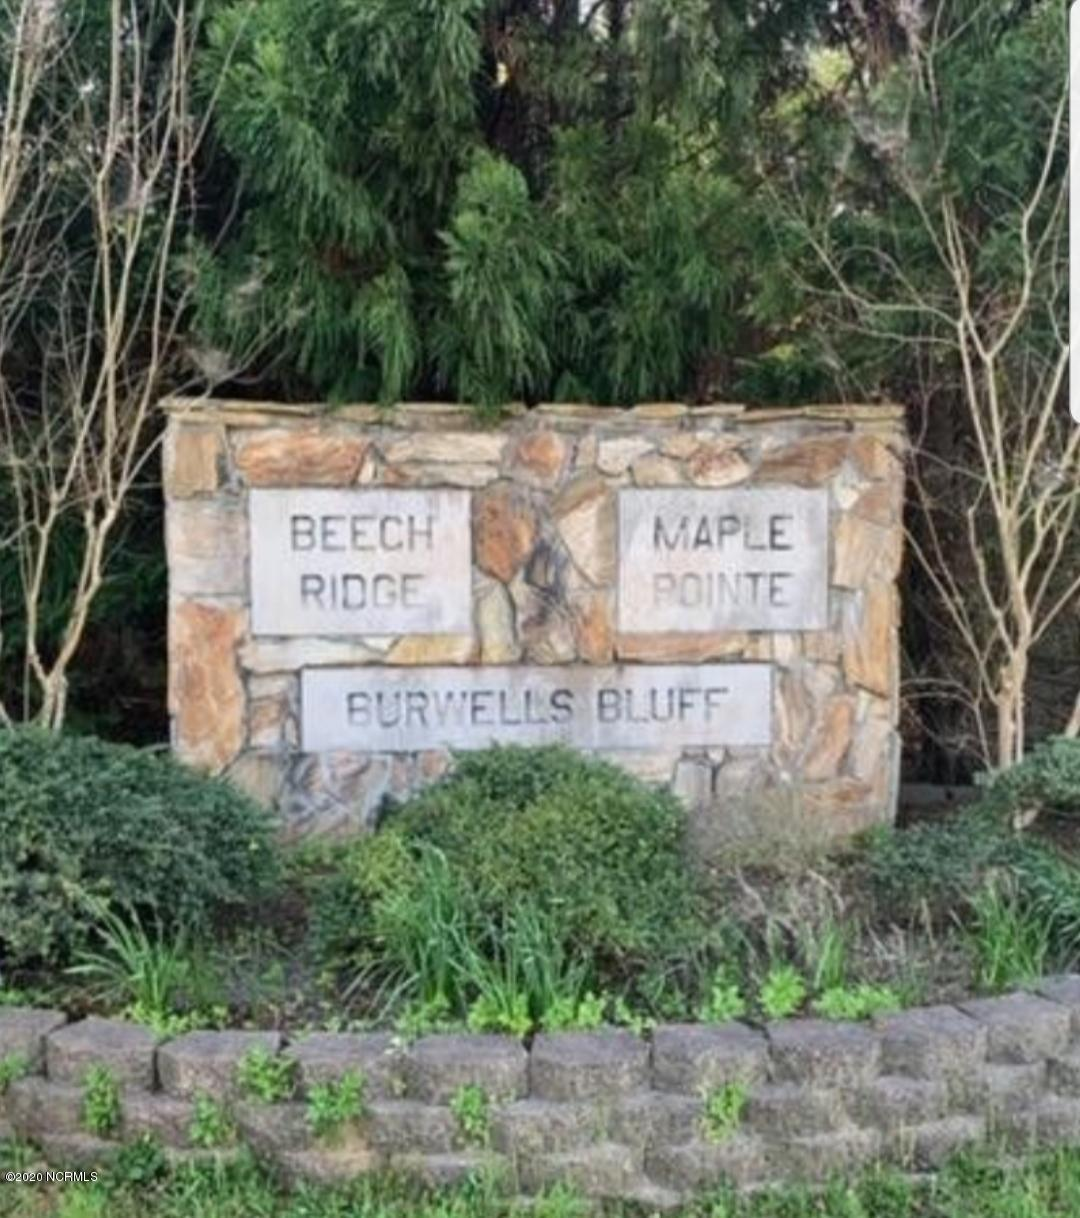 Lot 1 & 2 Maple Pointe Drive, Littleton, North Carolina 27850, ,Residential land,For sale,Maple Pointe,100224635